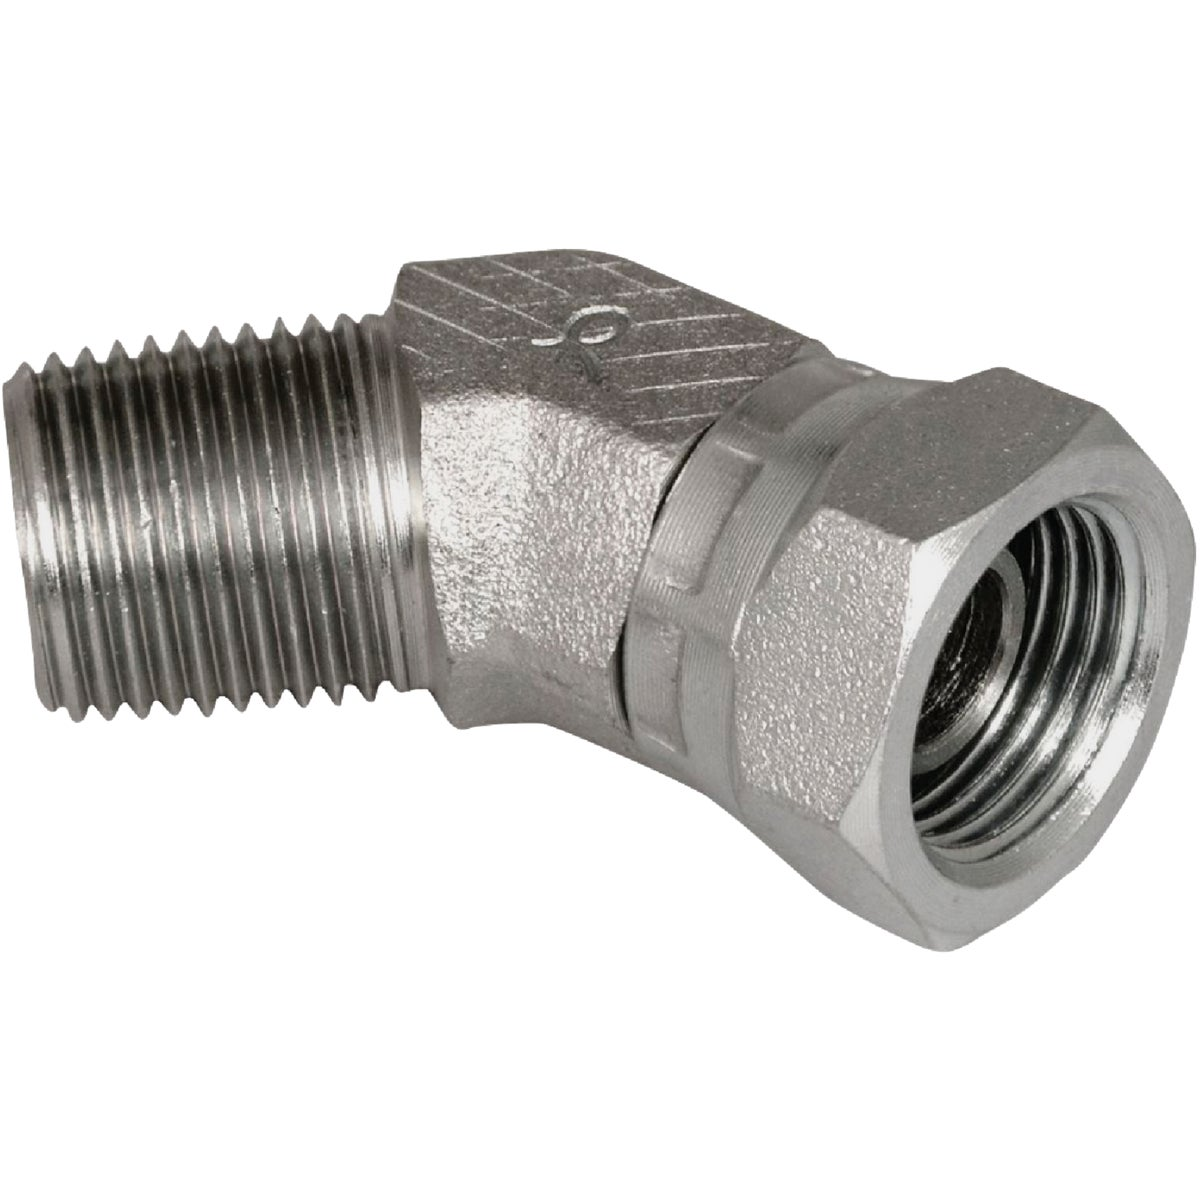 1/2MX1/2F SW45 H ADAPTER - 39005550 by Apache Hose Belting